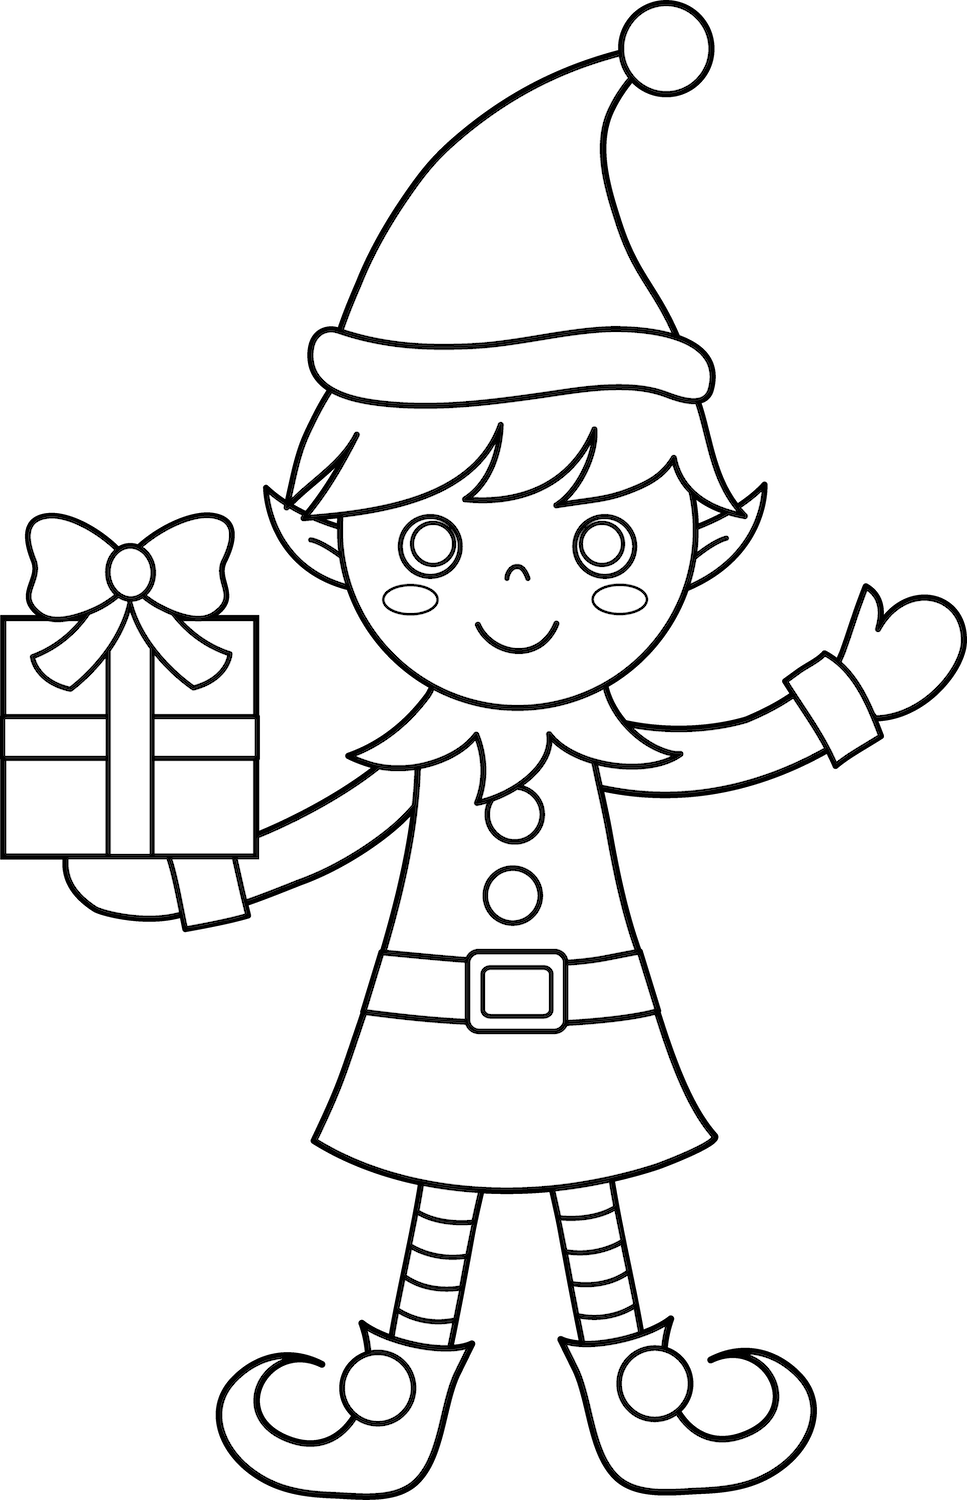 christmas coloring pages for kids free disney christmas printable coloring pages for kids coloring christmas pages kids for